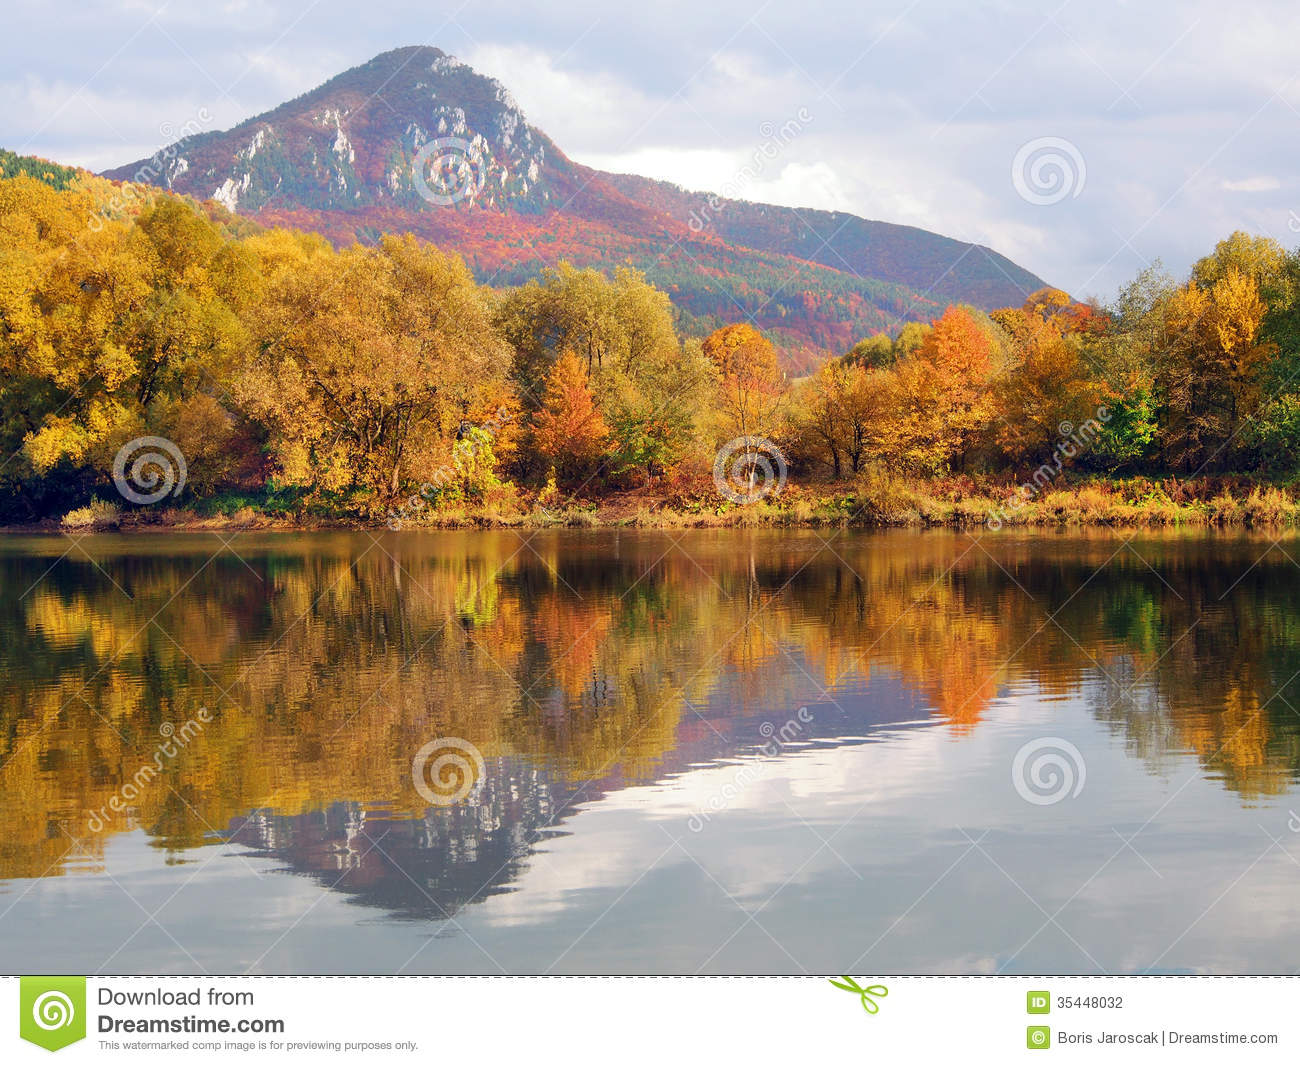 Sip hill and Vah river in autumn